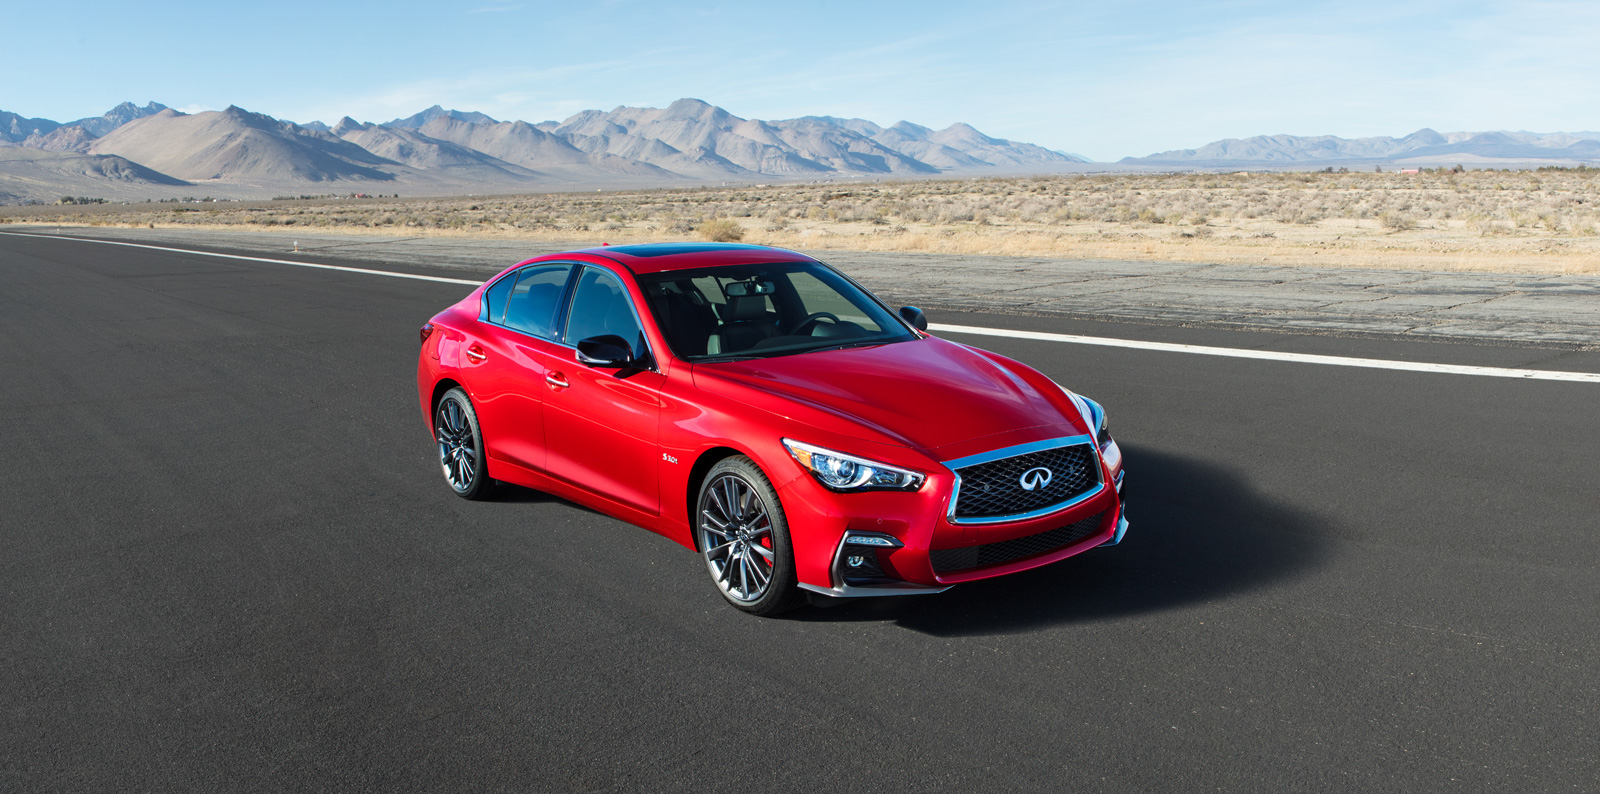 2018 Infiniti Q50 Makes Its North American Debut At The 2017 New